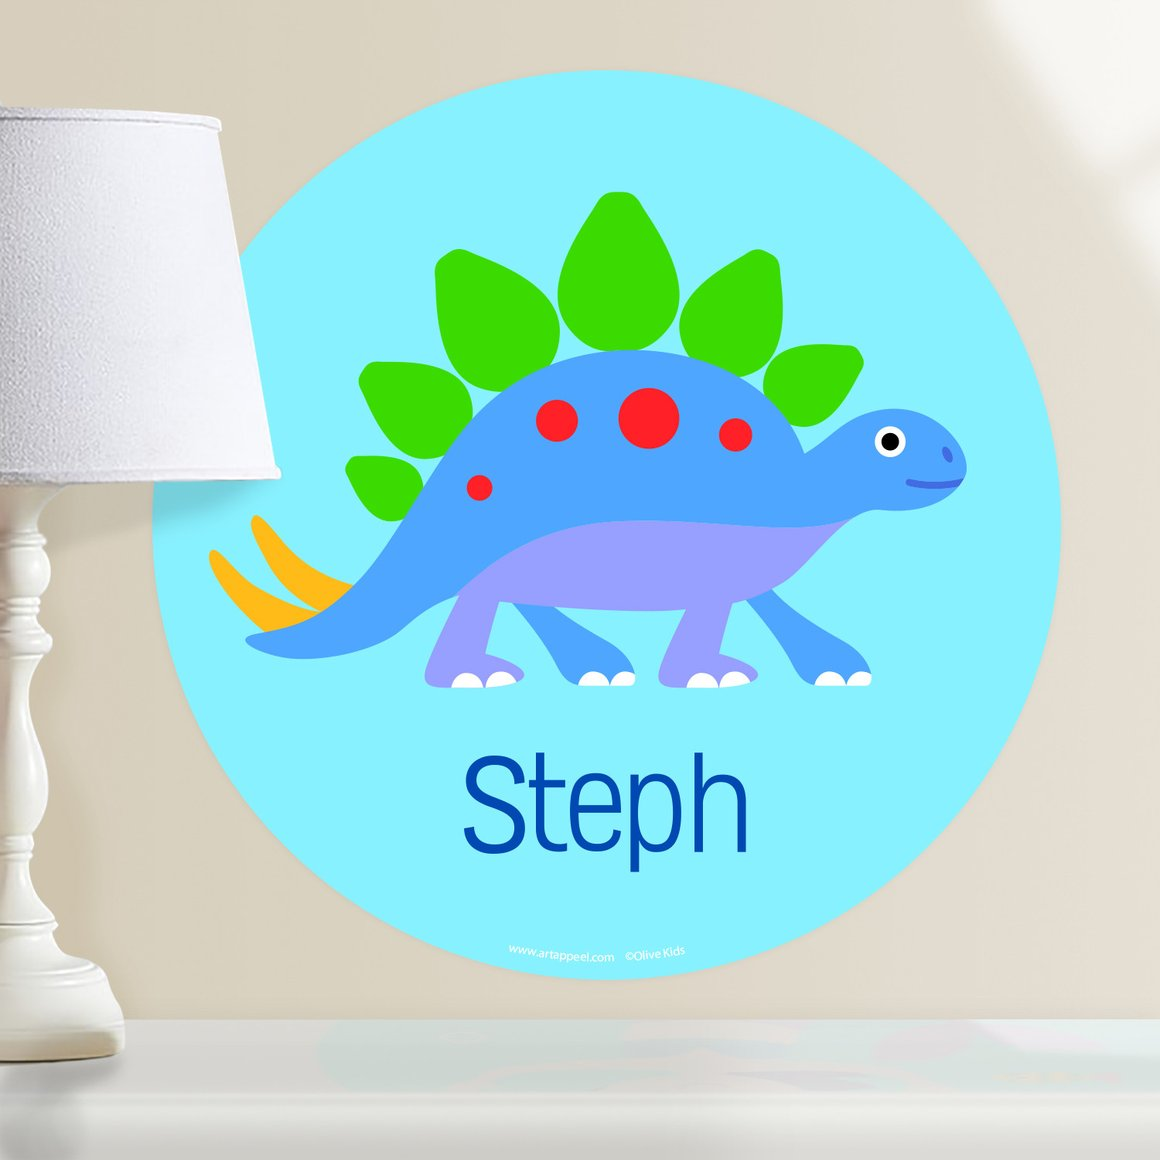 Dinosaur Land Stegosaurus Personalized Kids Wall Dotz Decal